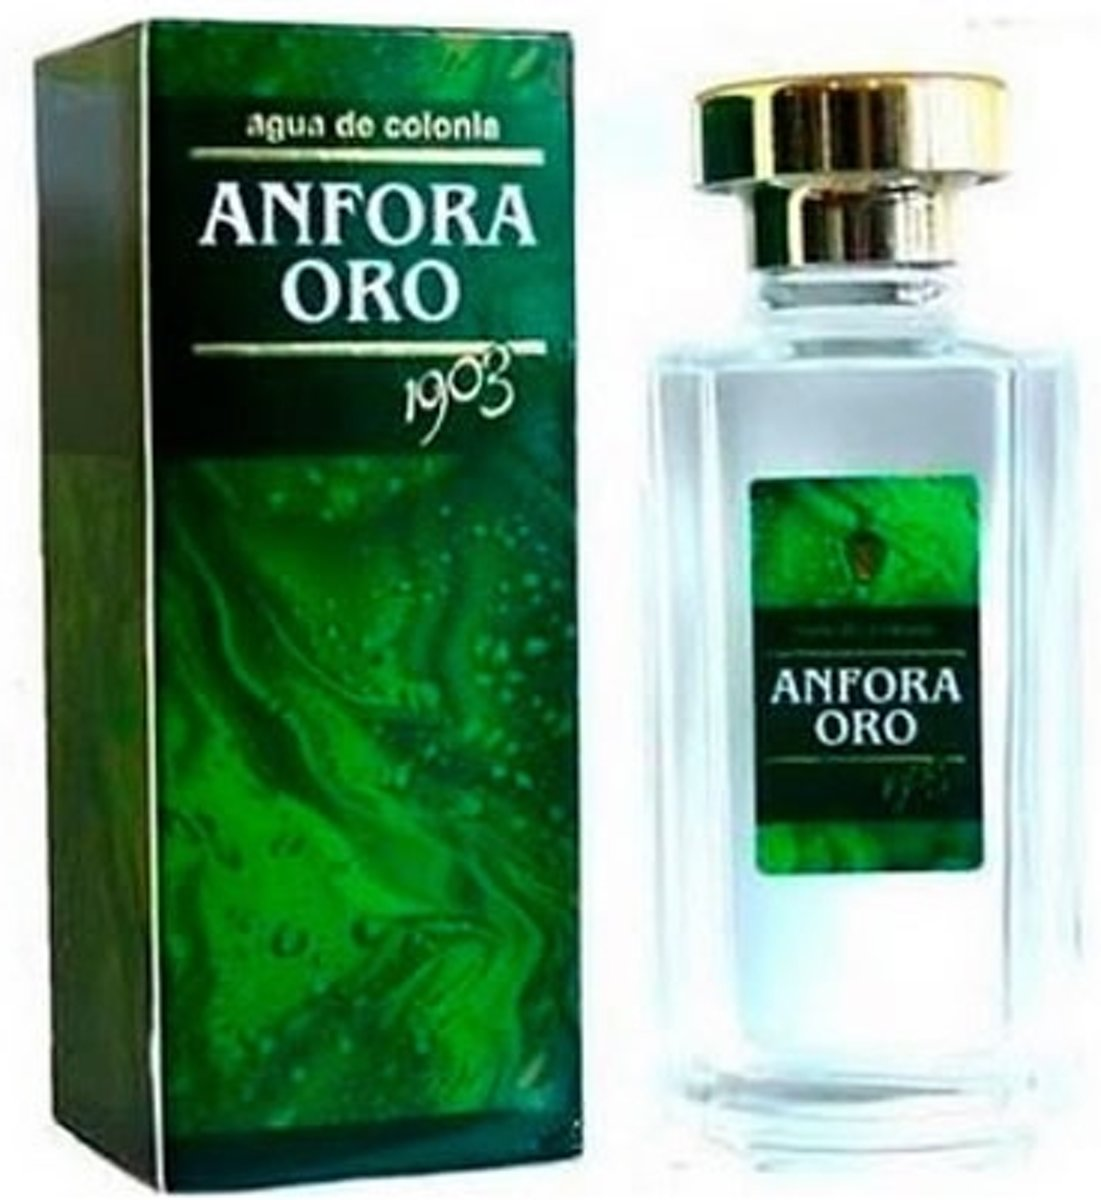 MULTI BUNDEL 3 stuks Instituto Espanol Anfora Oro Eau De Cologne Spray 400ml